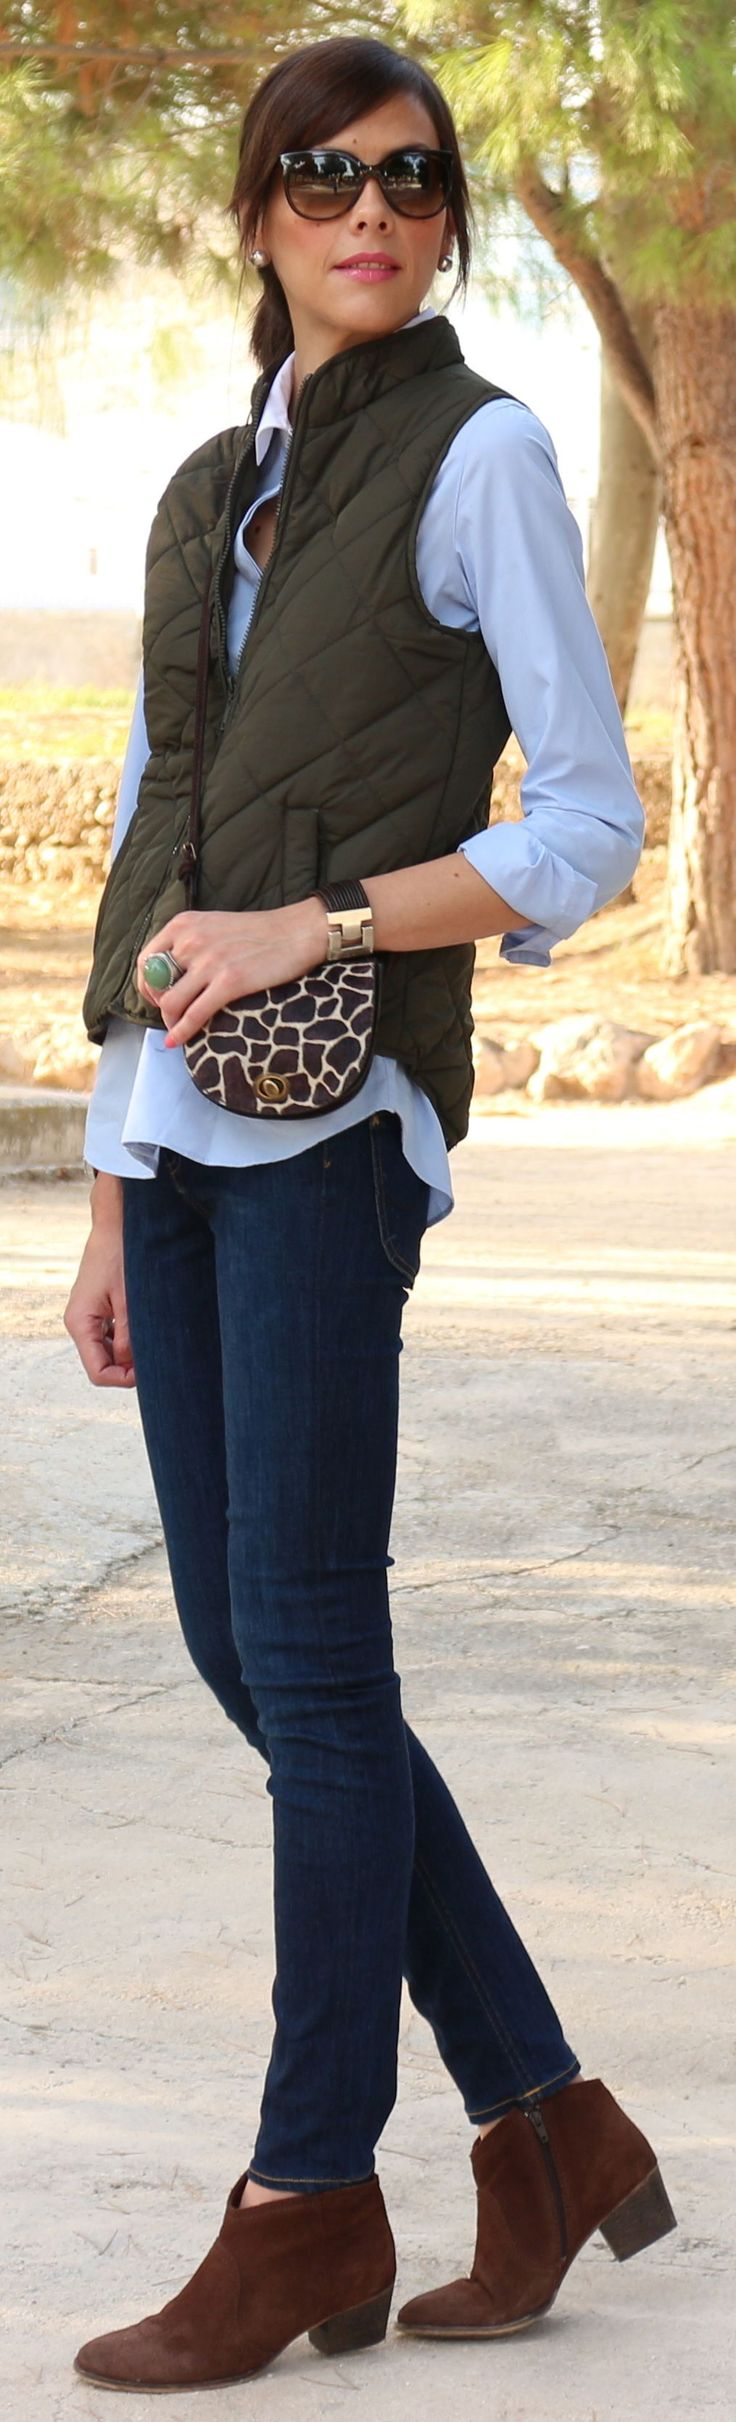 Another basic classic style! Love it! #Chaleco + #Botines by Be Trench